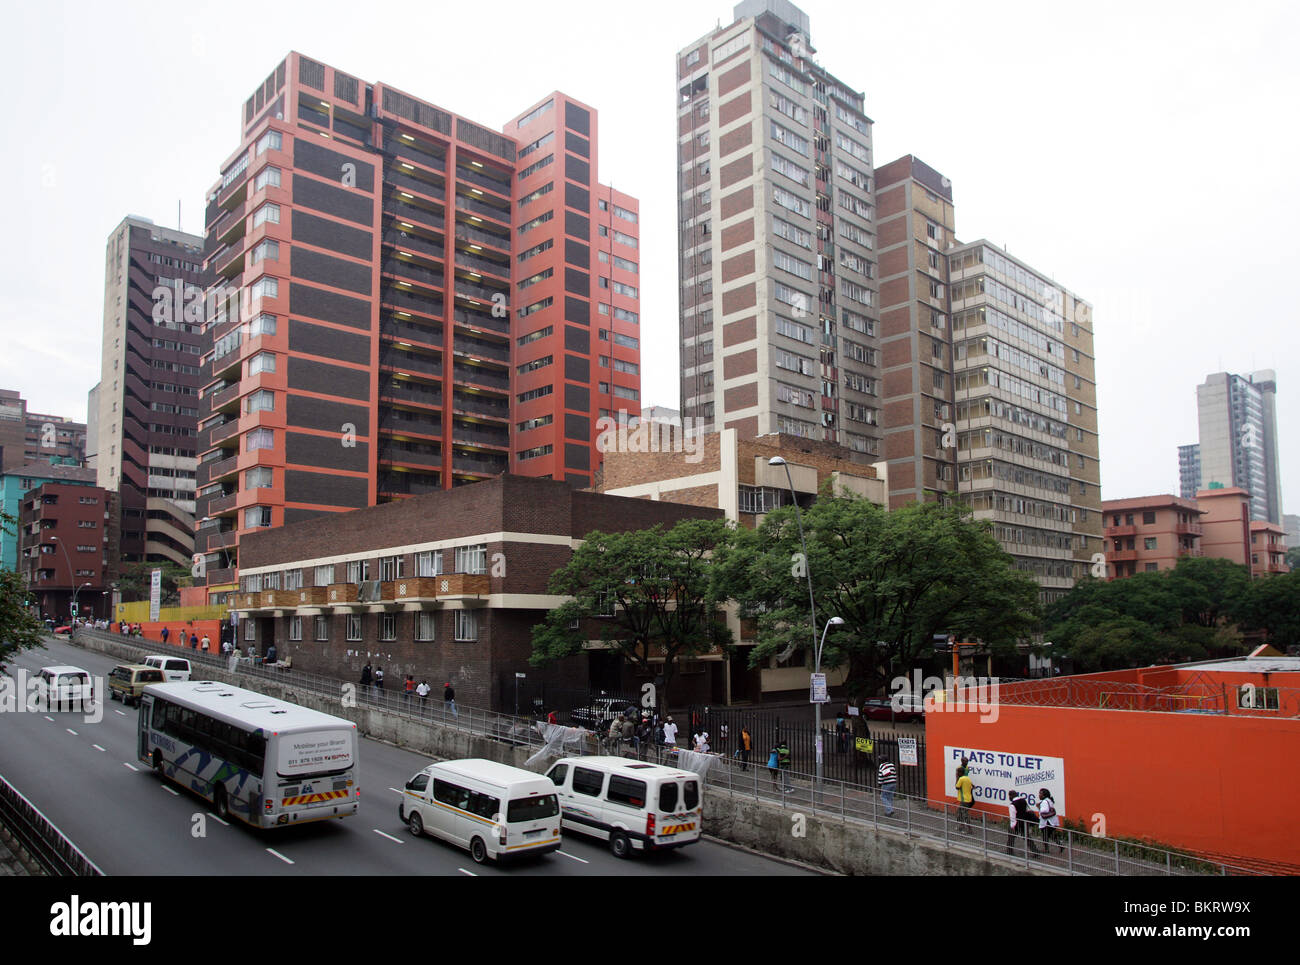 District Hillbrow in Johannesburg, South Africa - Stock Image